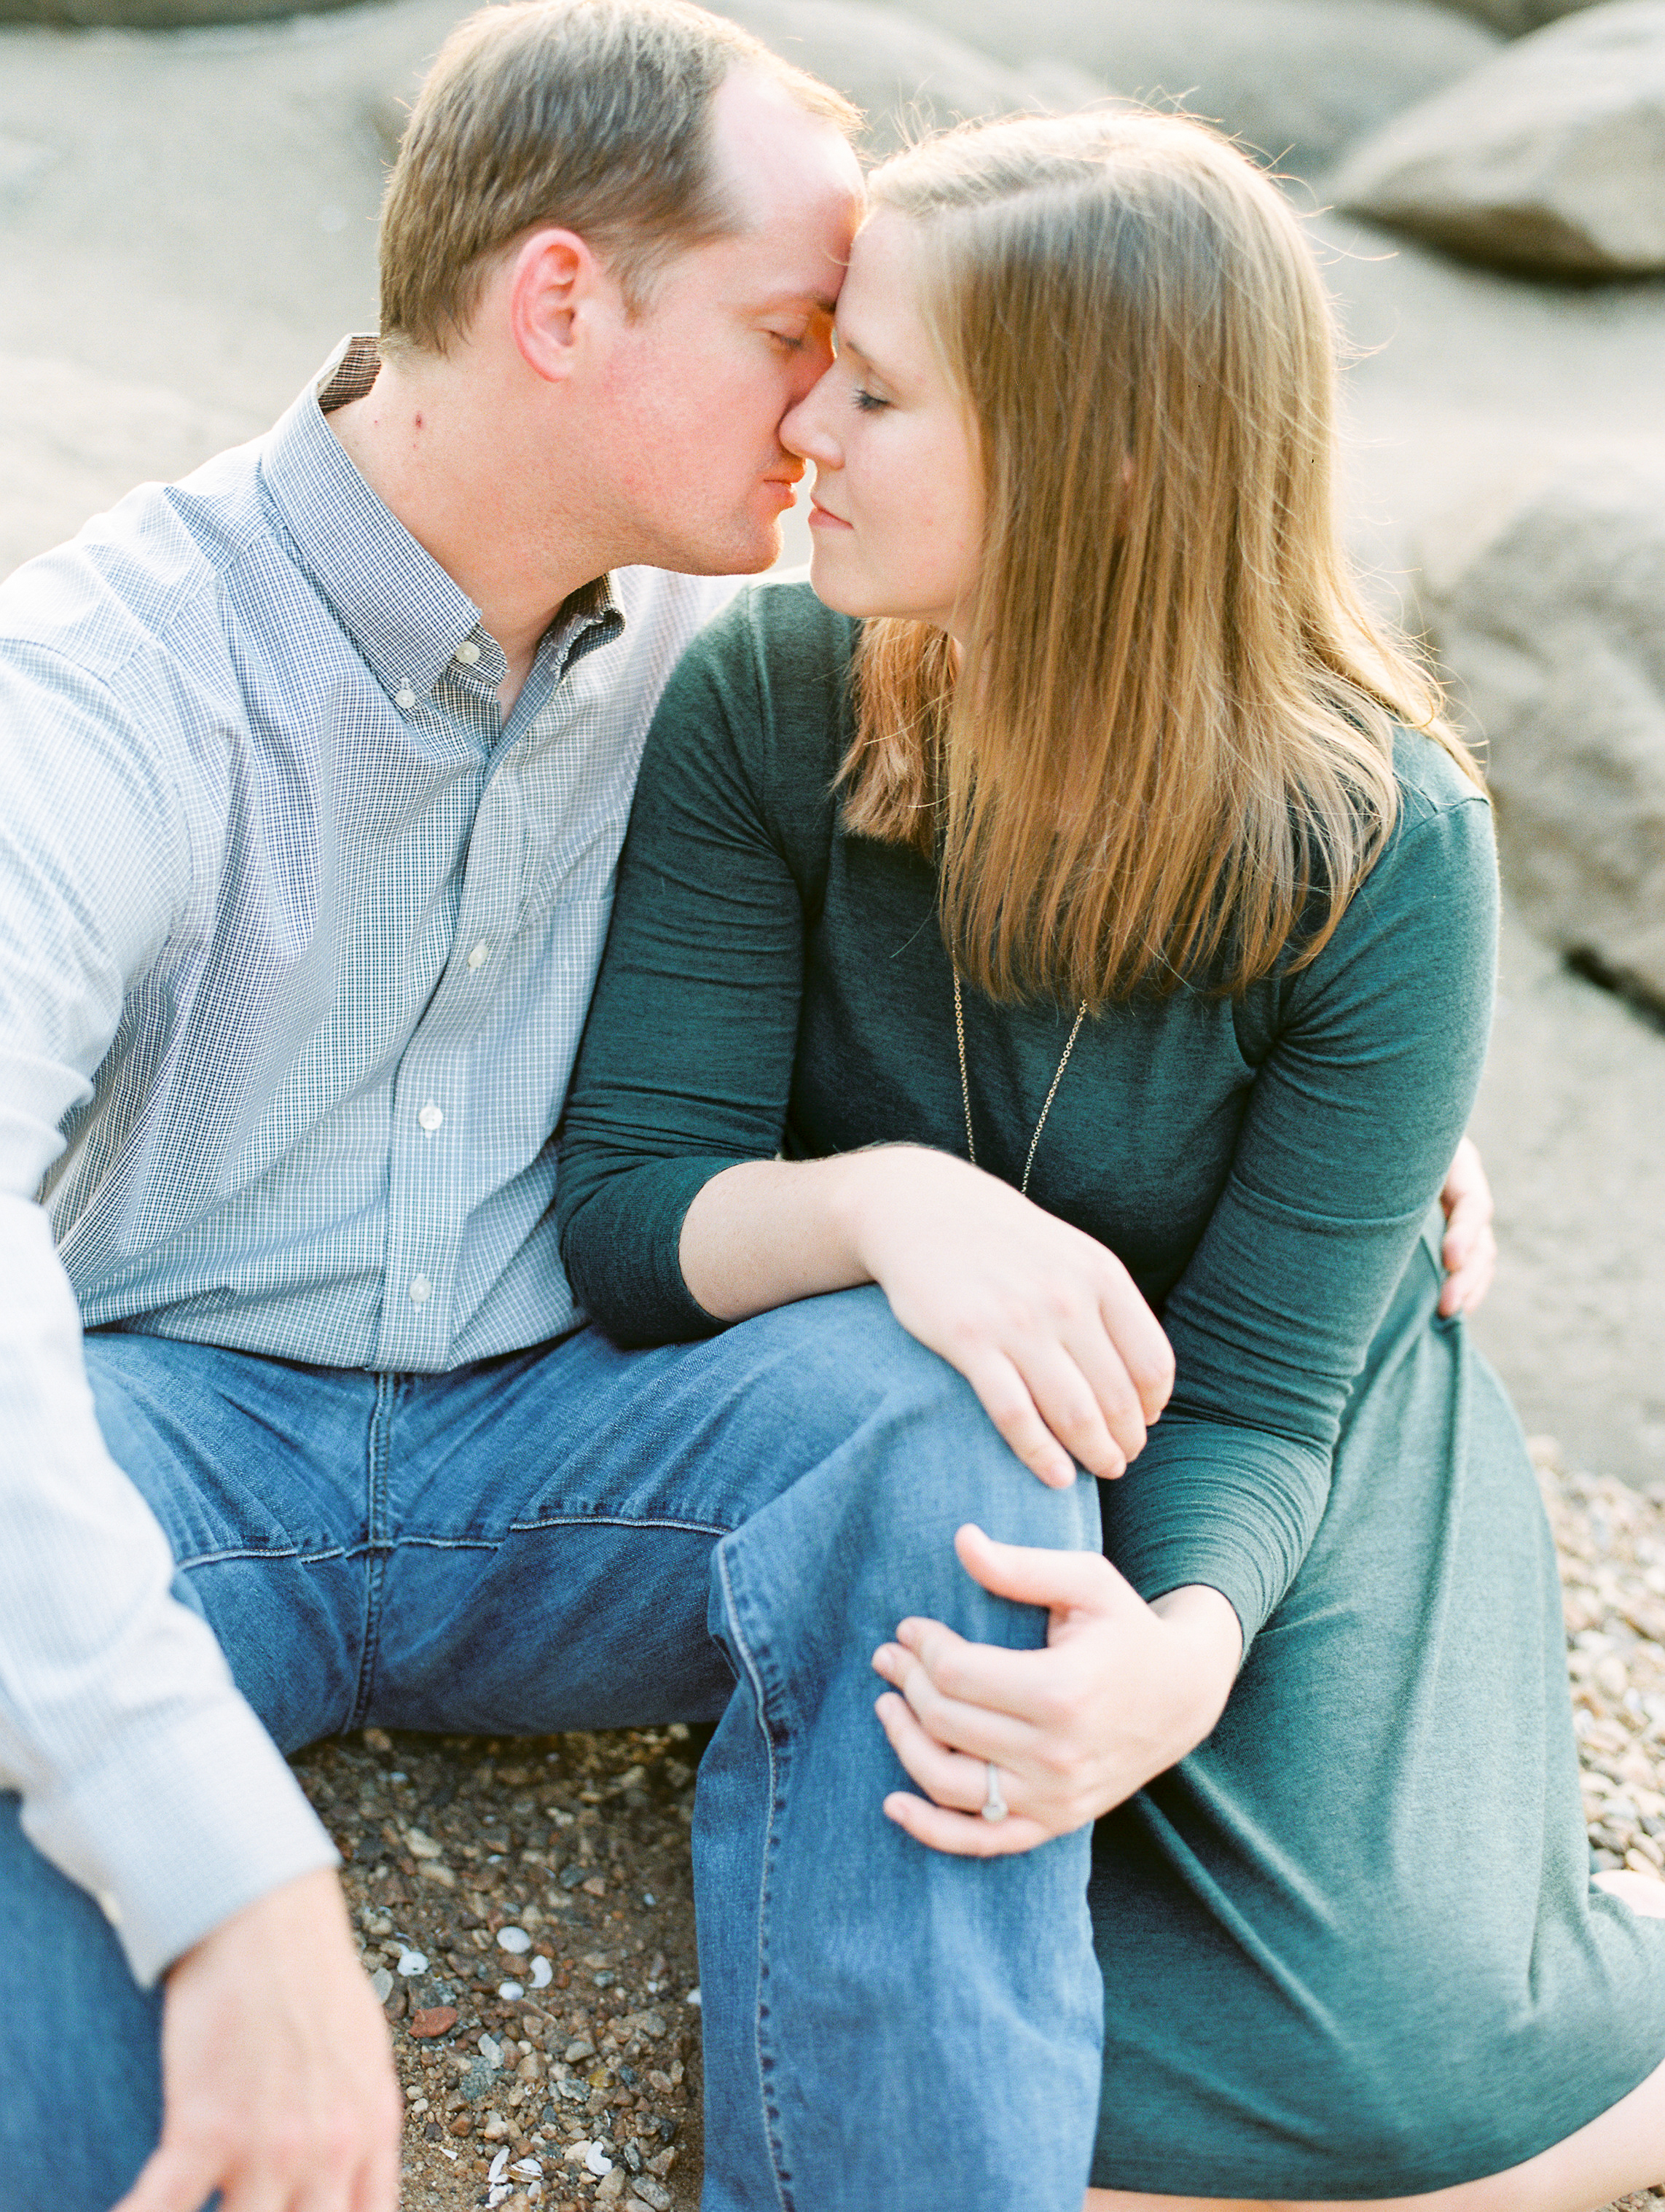 Becca_Adam_Riverwalk_Engagement_Columbus_Georgia_Fallen_Photography-42.JPG